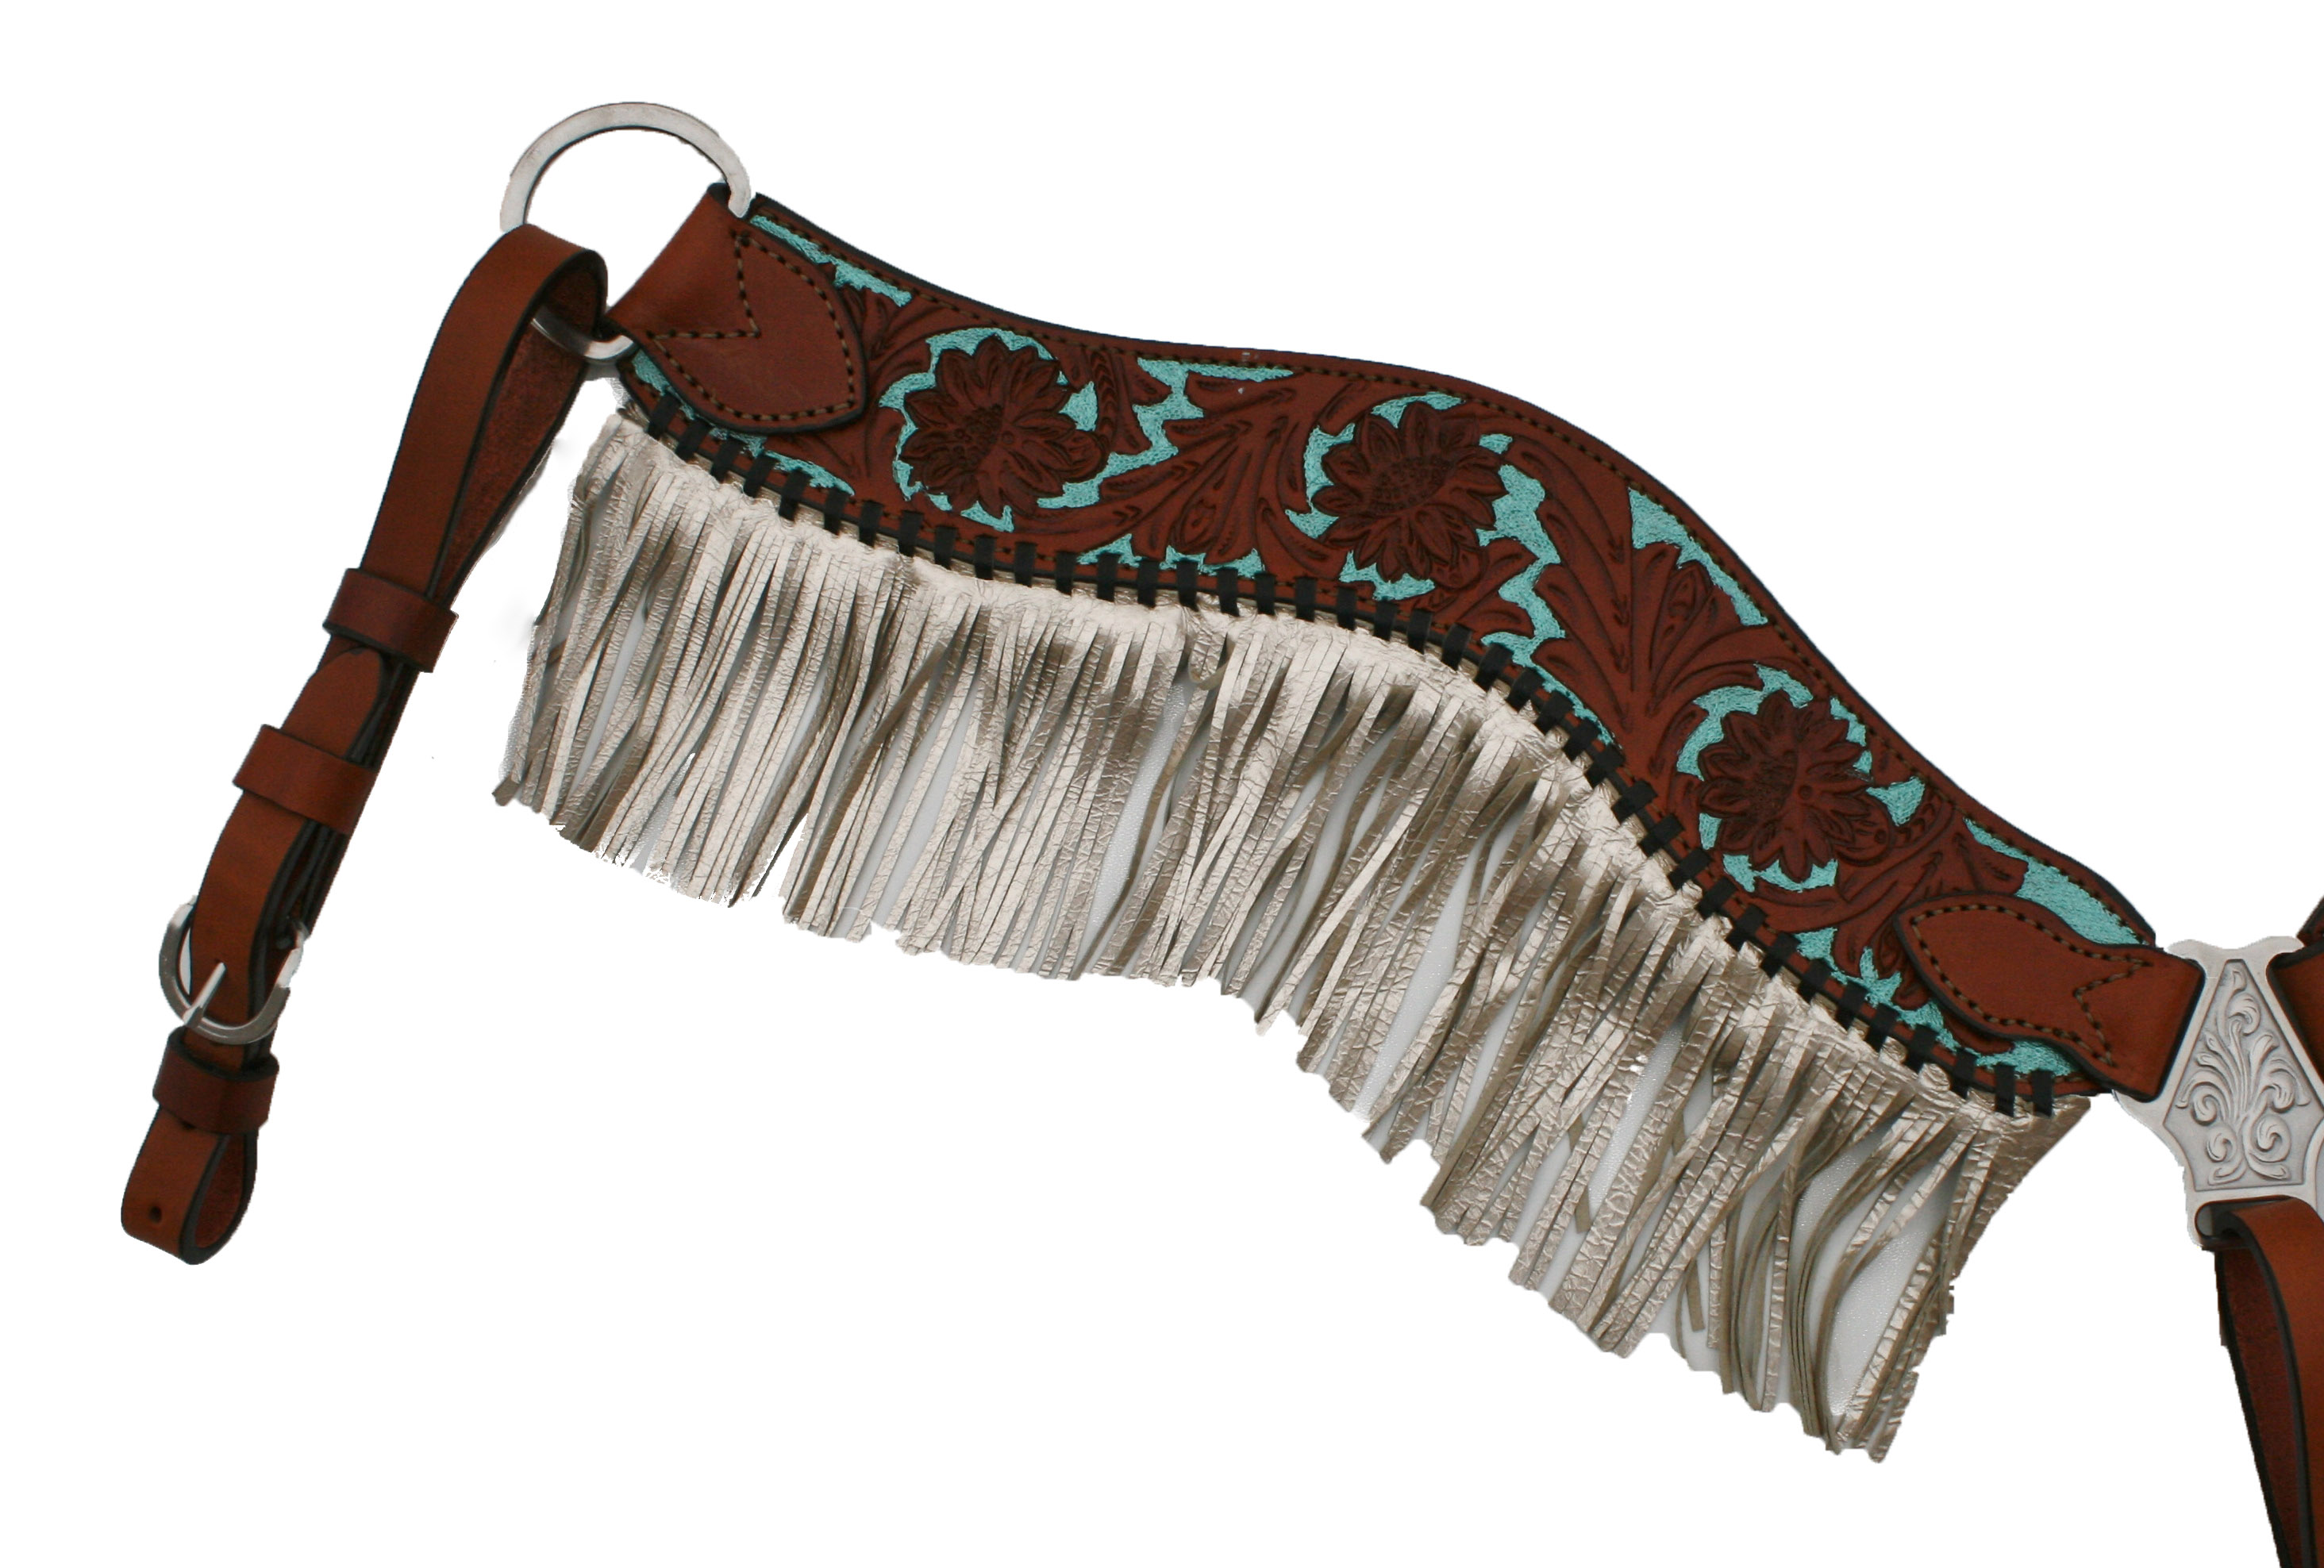 3F17-FT METALLIC FRINGE BREASTCOLLAR W TURQUOISE PAINTED BACKGROUND